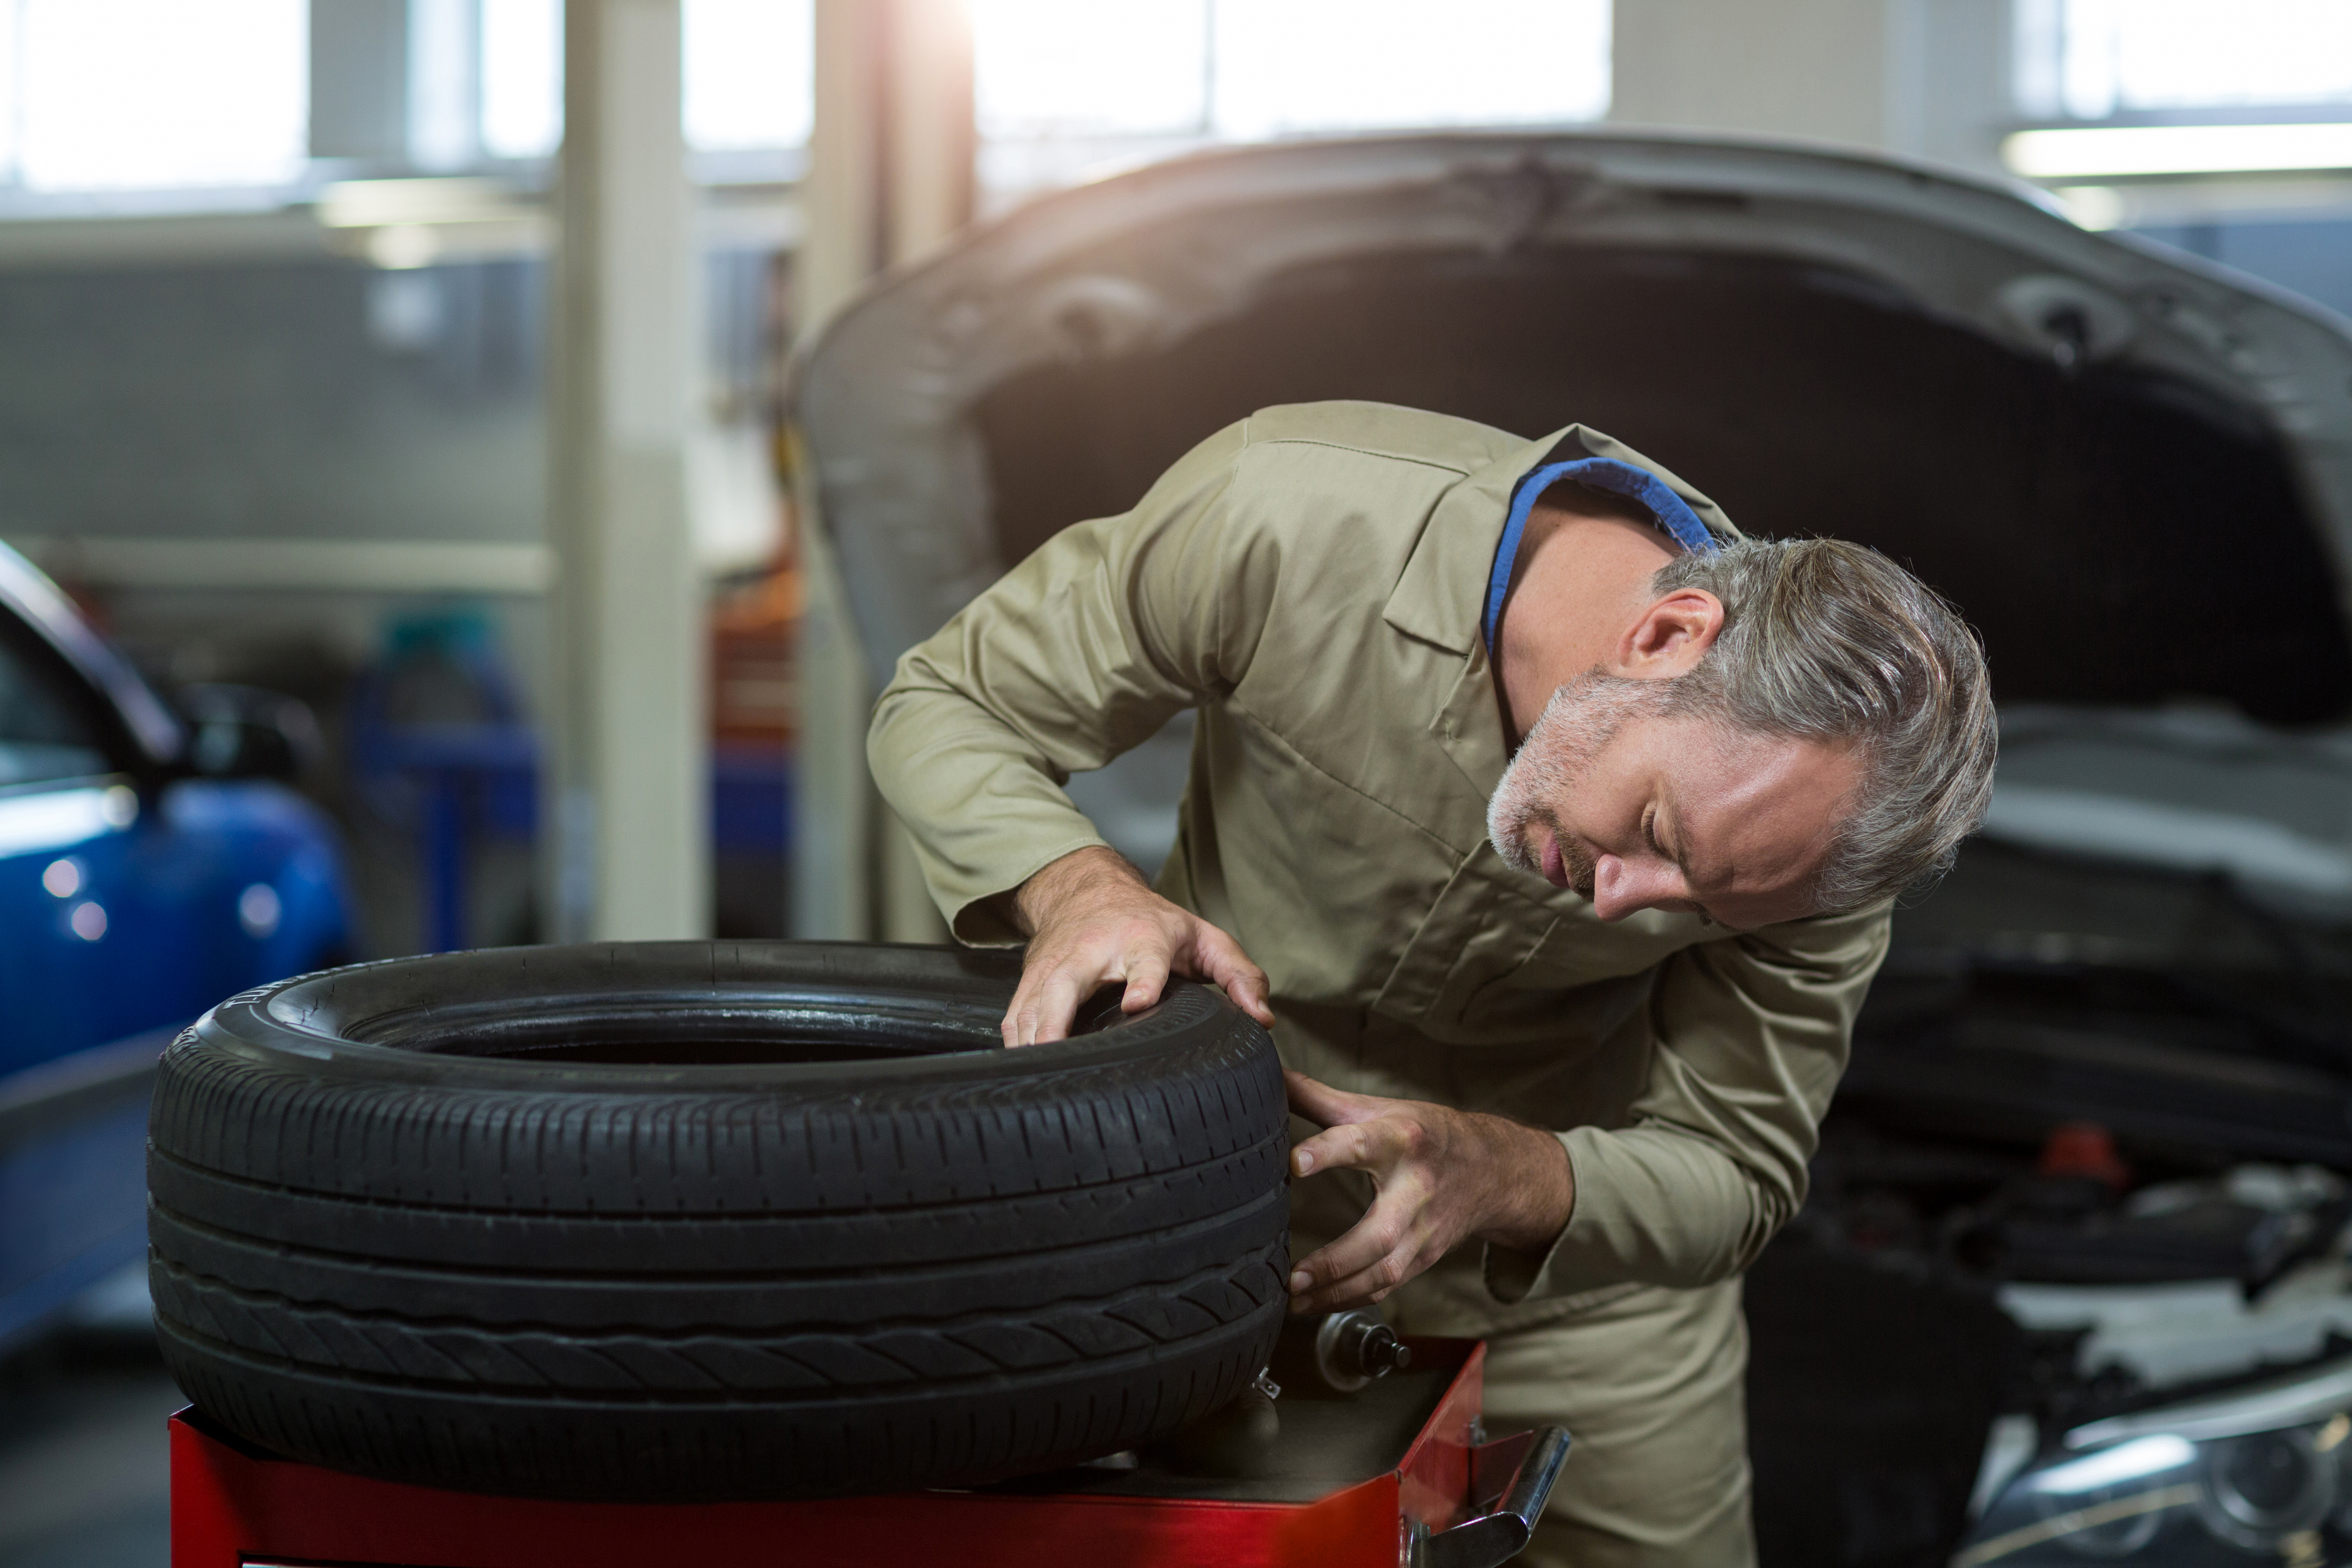 Mechanic examining a tyre in repair garage